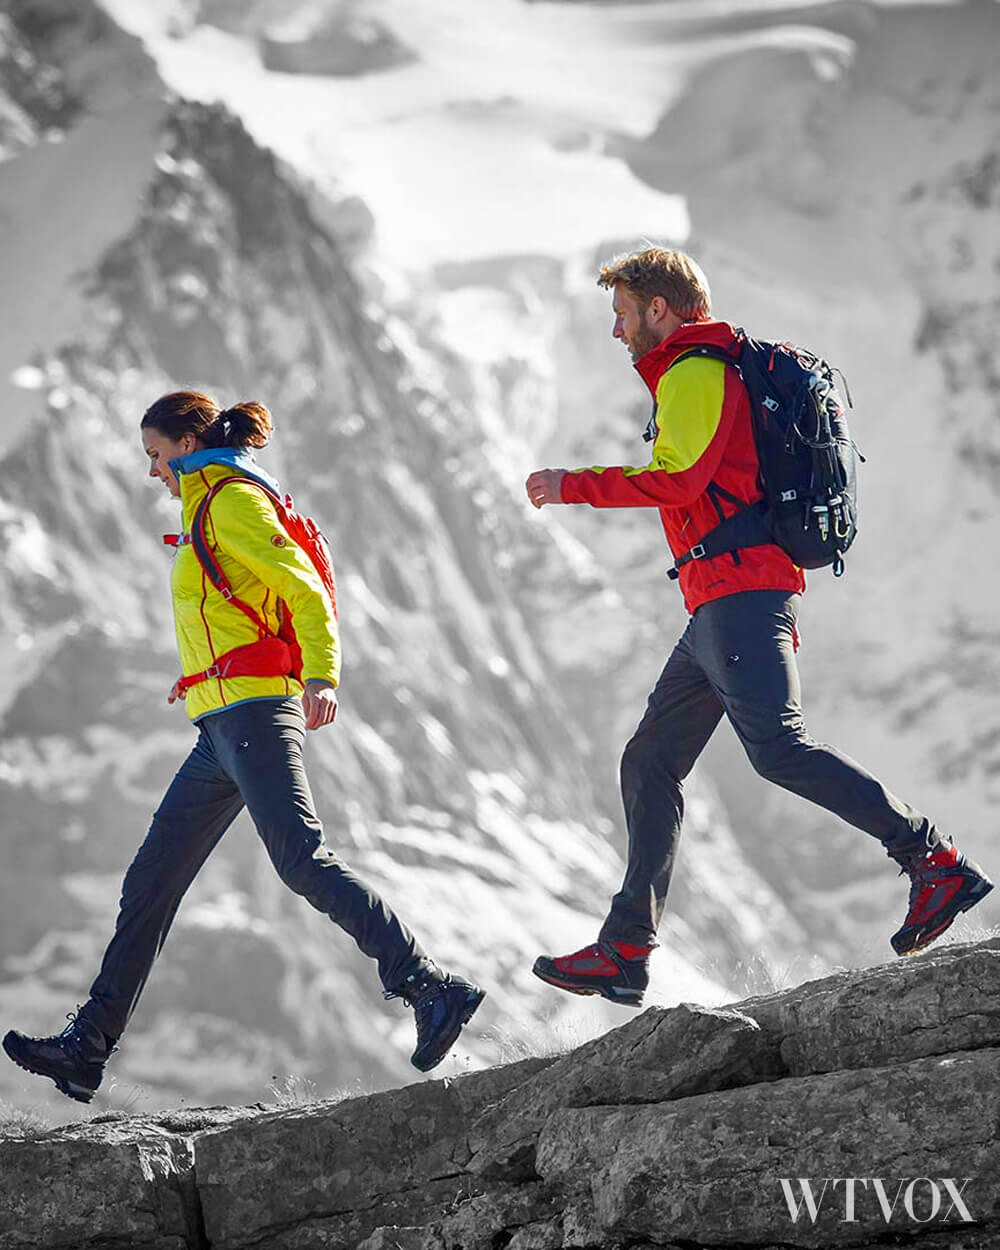 21 Best Outdoor Clothing Brands In The World (2021 Update)